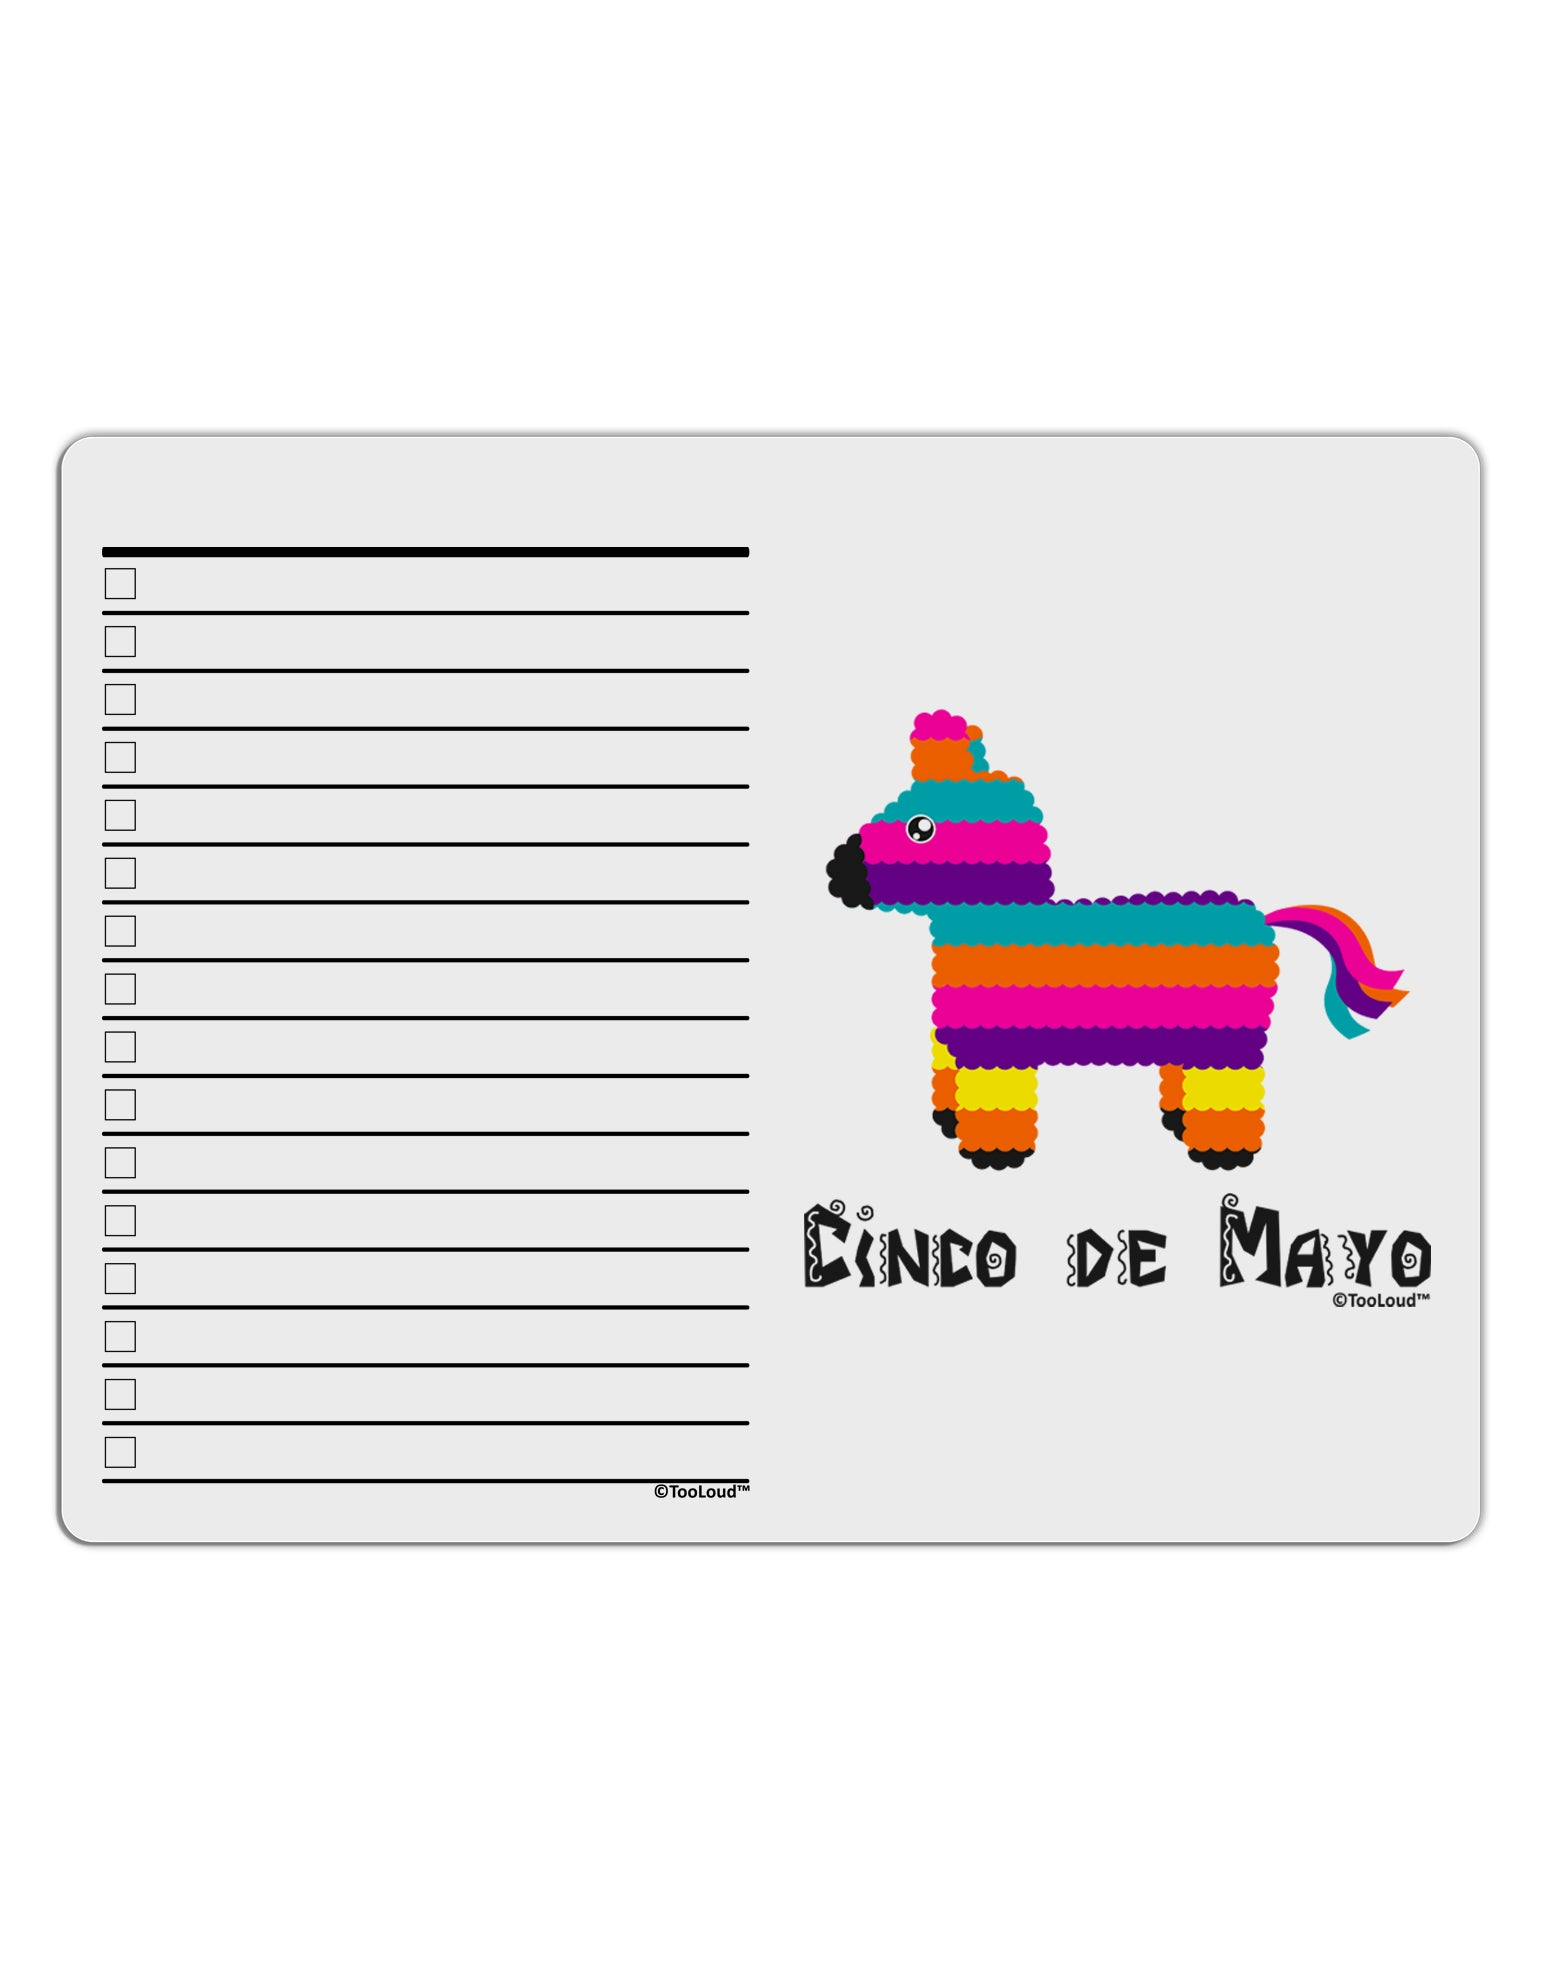 Colorful Pinata Design - Cinco de Mayo To Do Shopping List Dry Erase Board by TooLoud